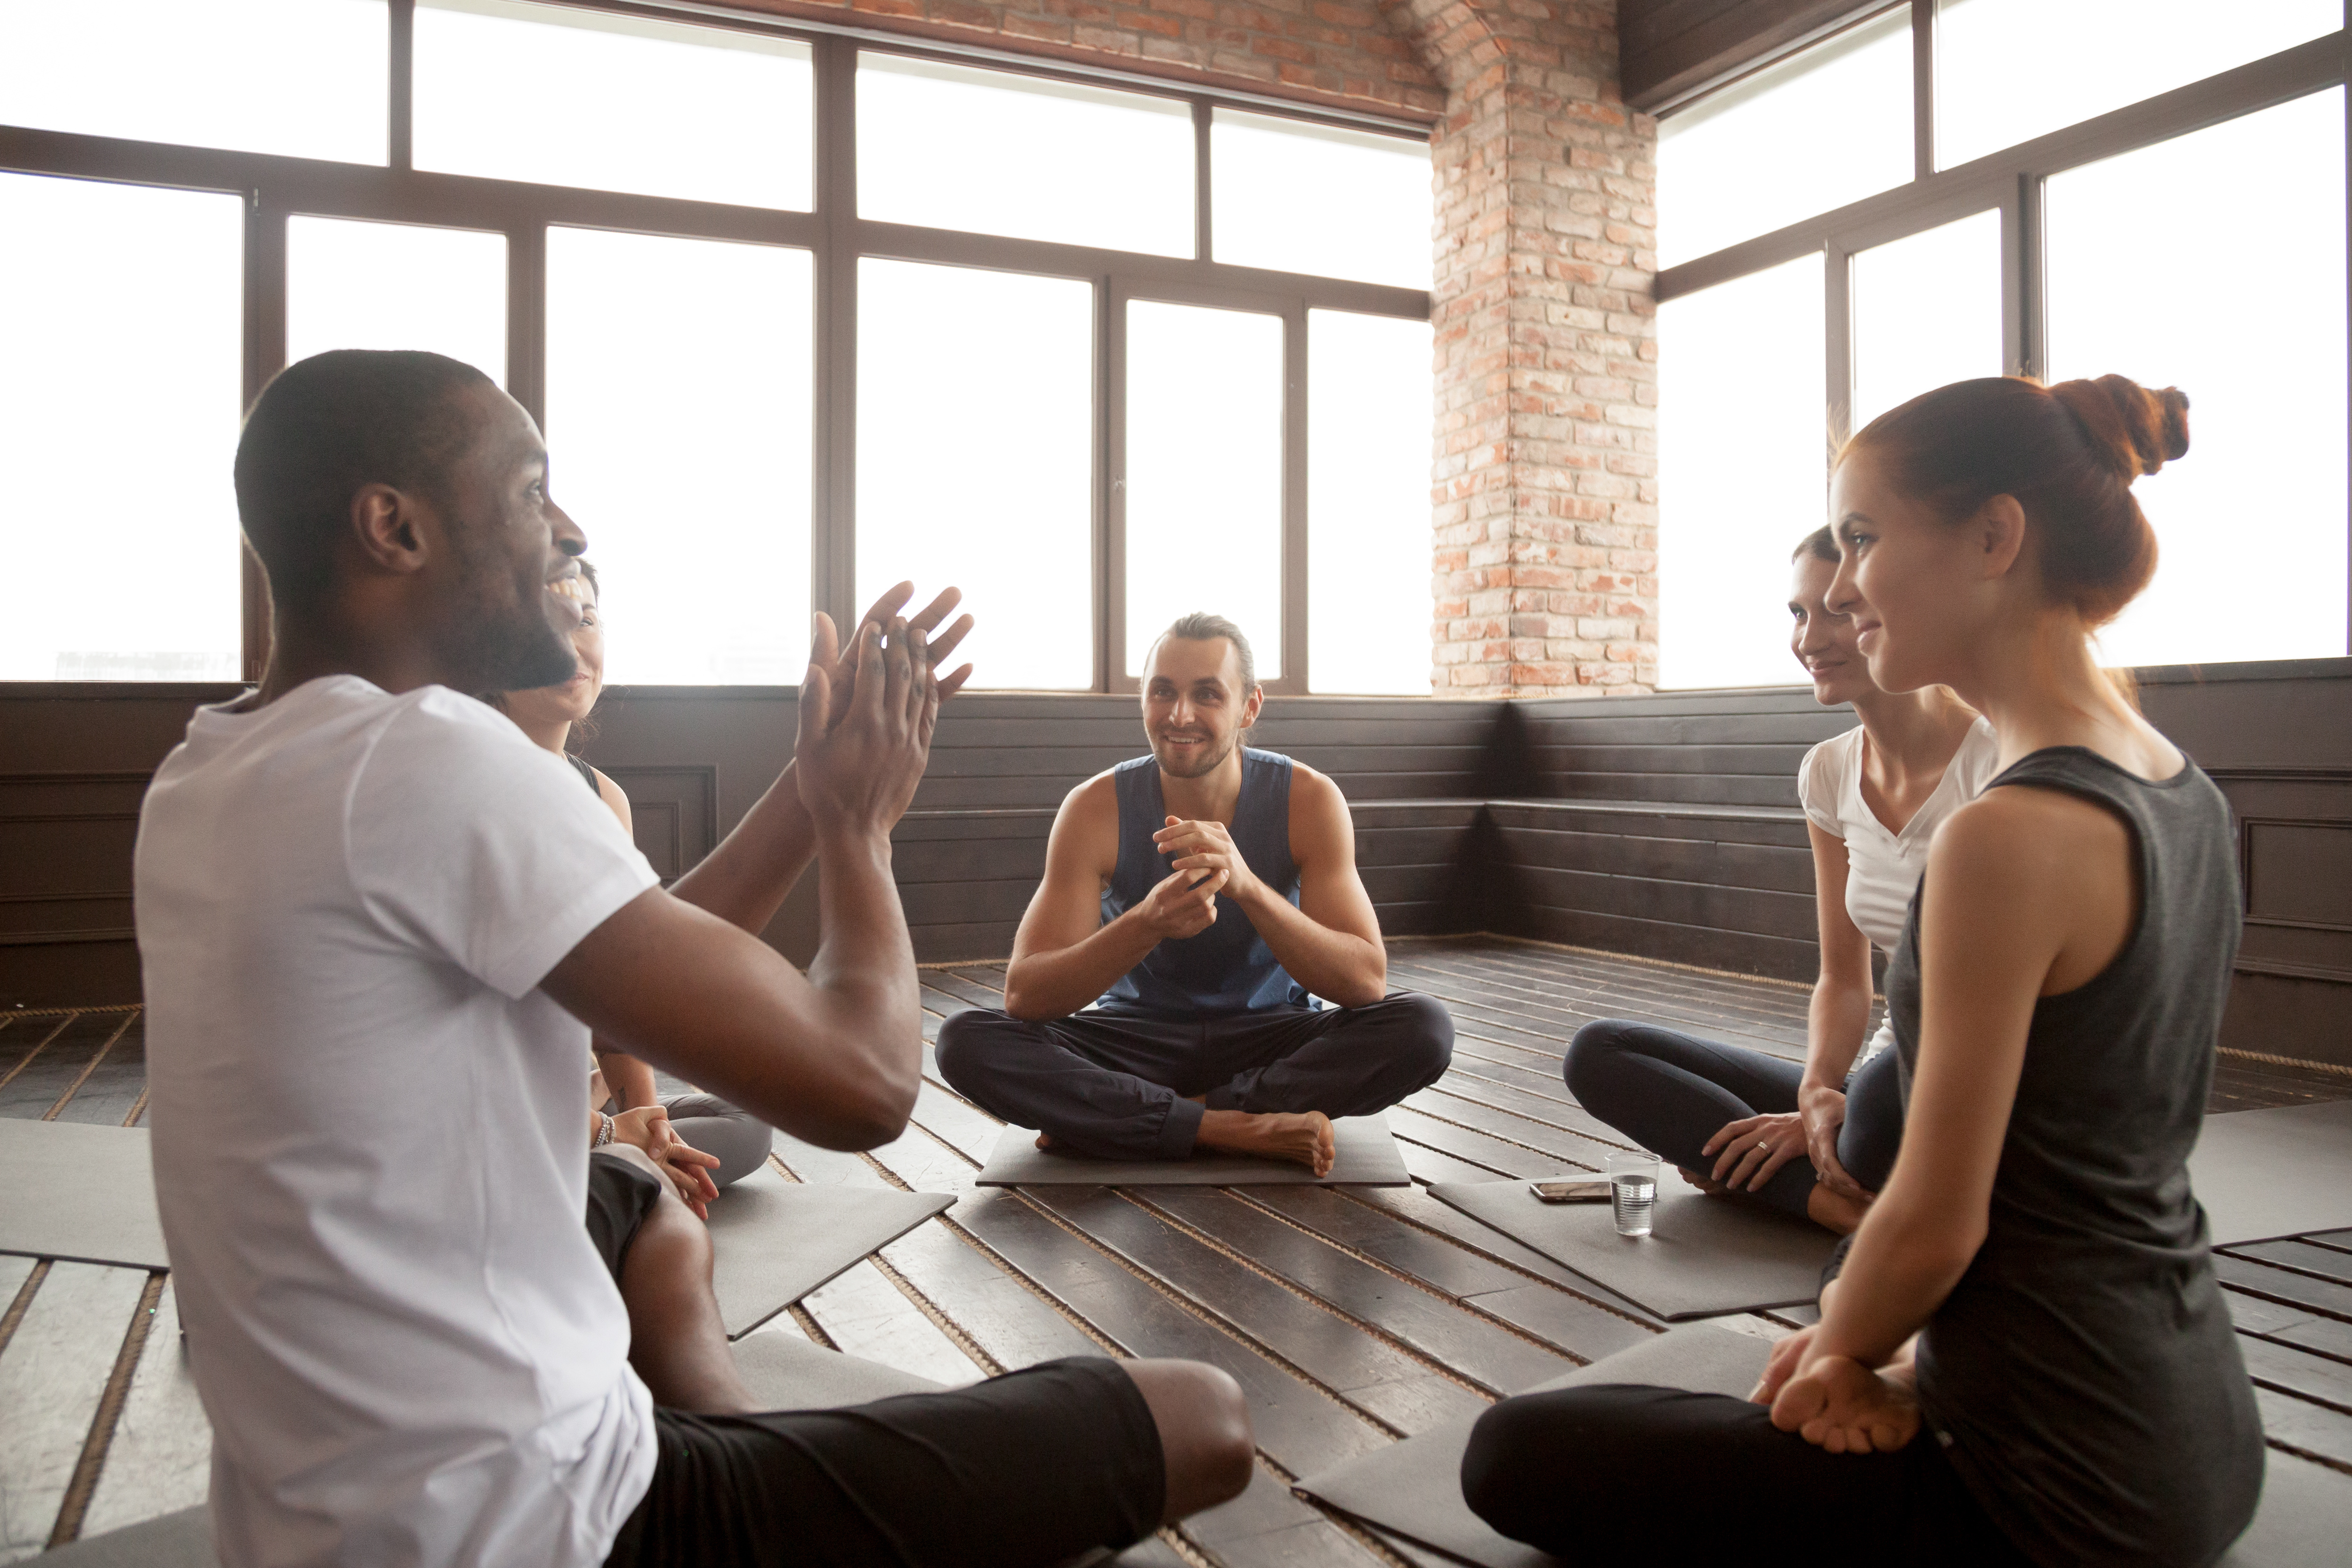 teacher training, yoga community, group support, reduce anxiety, increase social togetherness